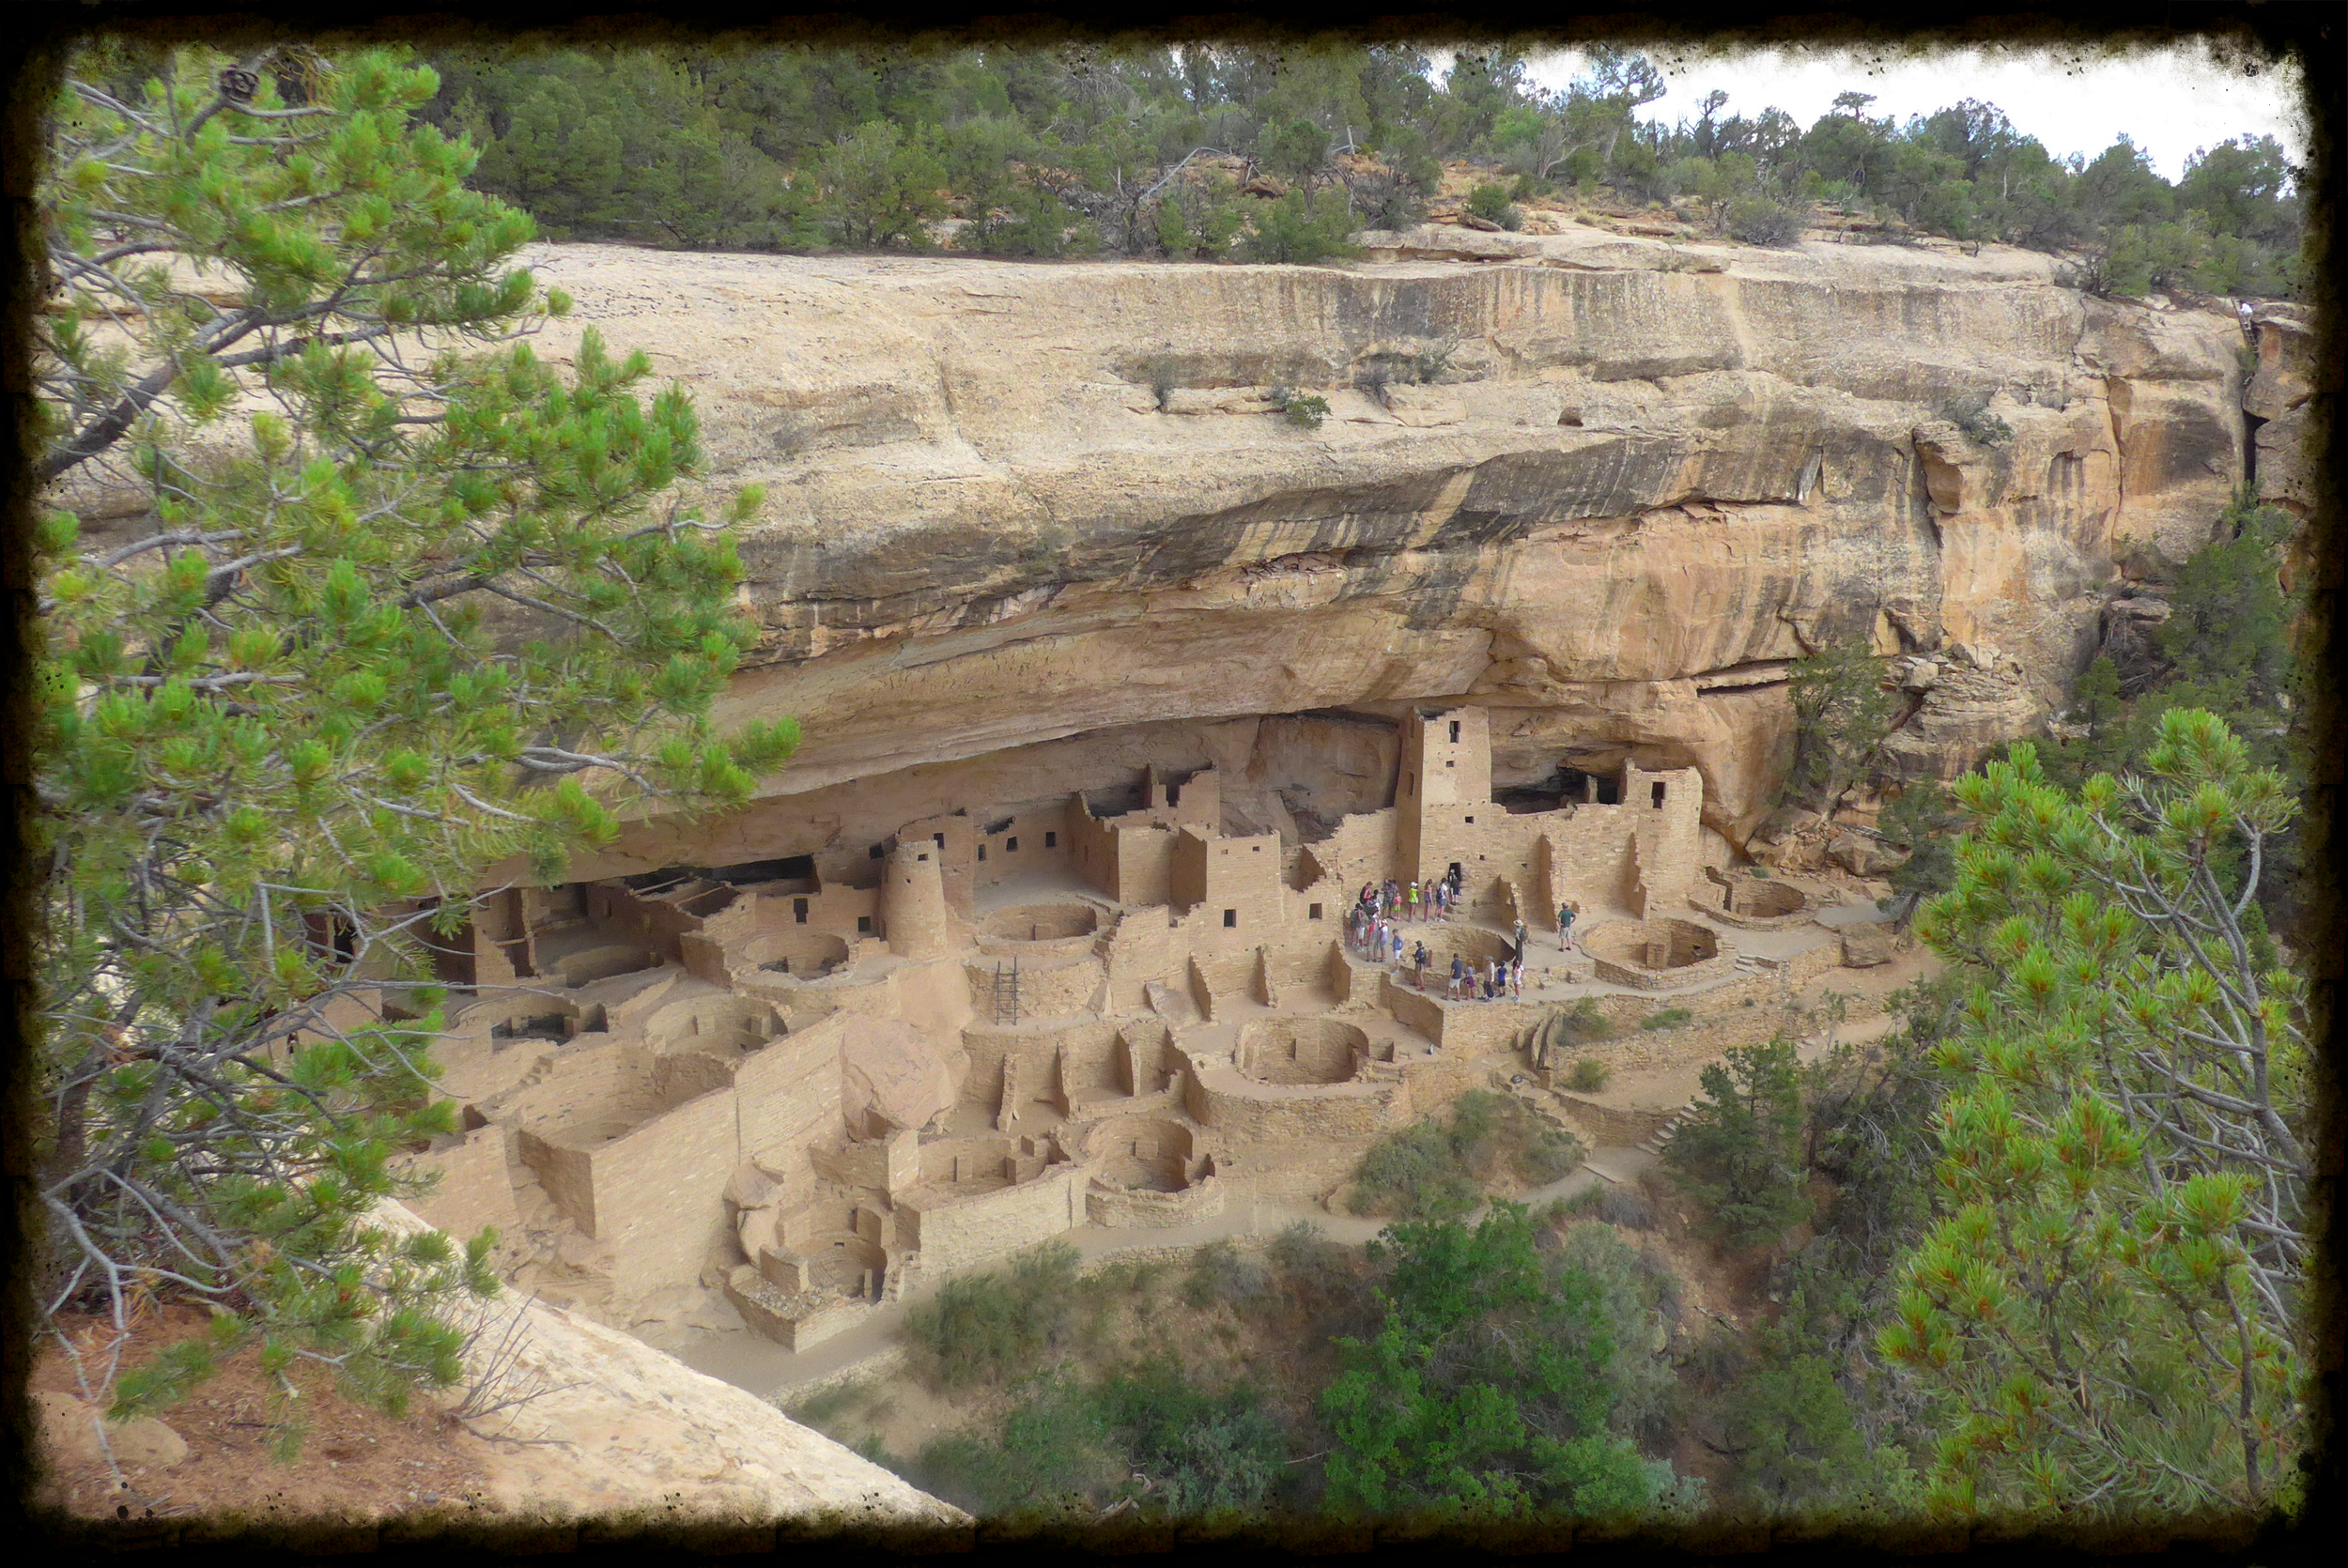 Visitors can take a ranger-guided tour through the famous Cliff Palace in Mesa Verde NP.  Photo by Michael Mundt